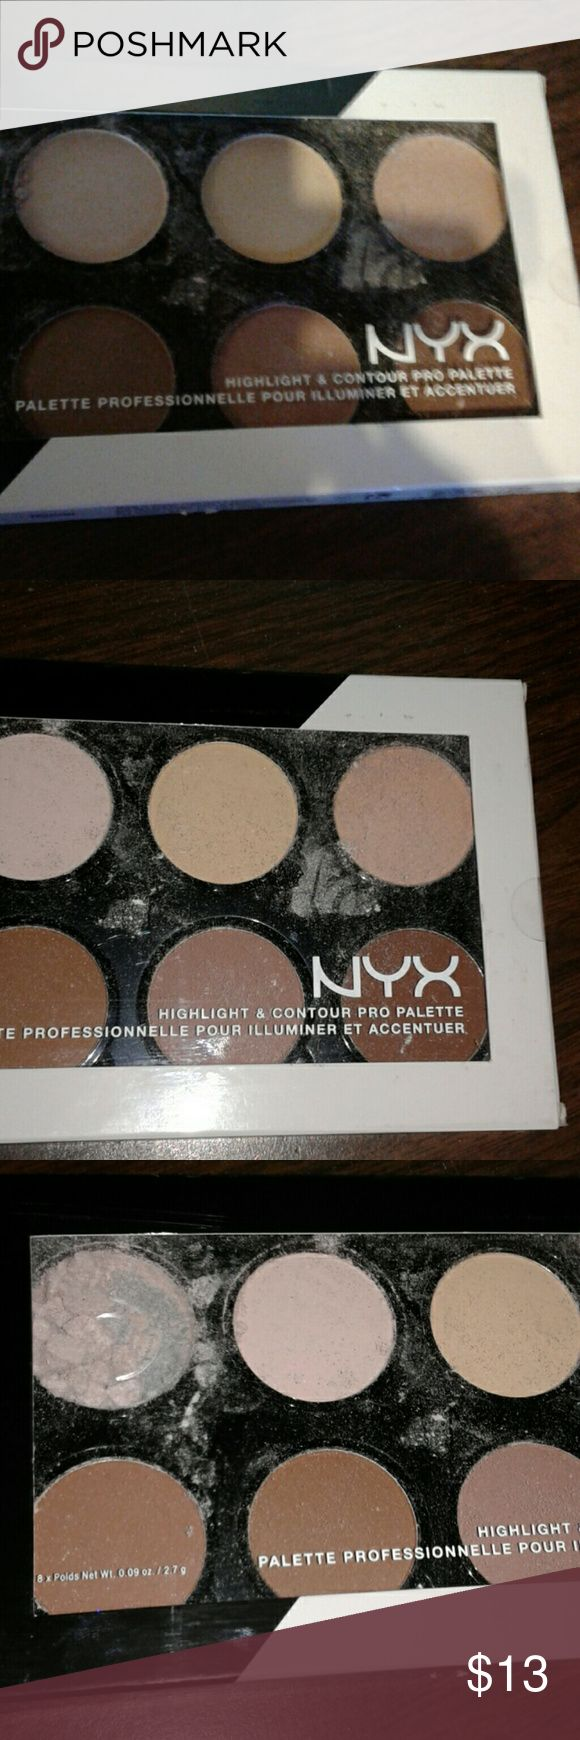 NYX PROFESSIONAL Highlight & Contour Pro Palette Define your features like a pro with NYX Professional Makeup refillable Highlight & Contour Pro Palette! Each set includes four customizable highlighting and contouring shades perfect for emphasizing your favorite features.  Accidentally dropped it and one of the shades exploded. It's never even been opened.  Price reflects this broken shade. Makeup Eyeshadow